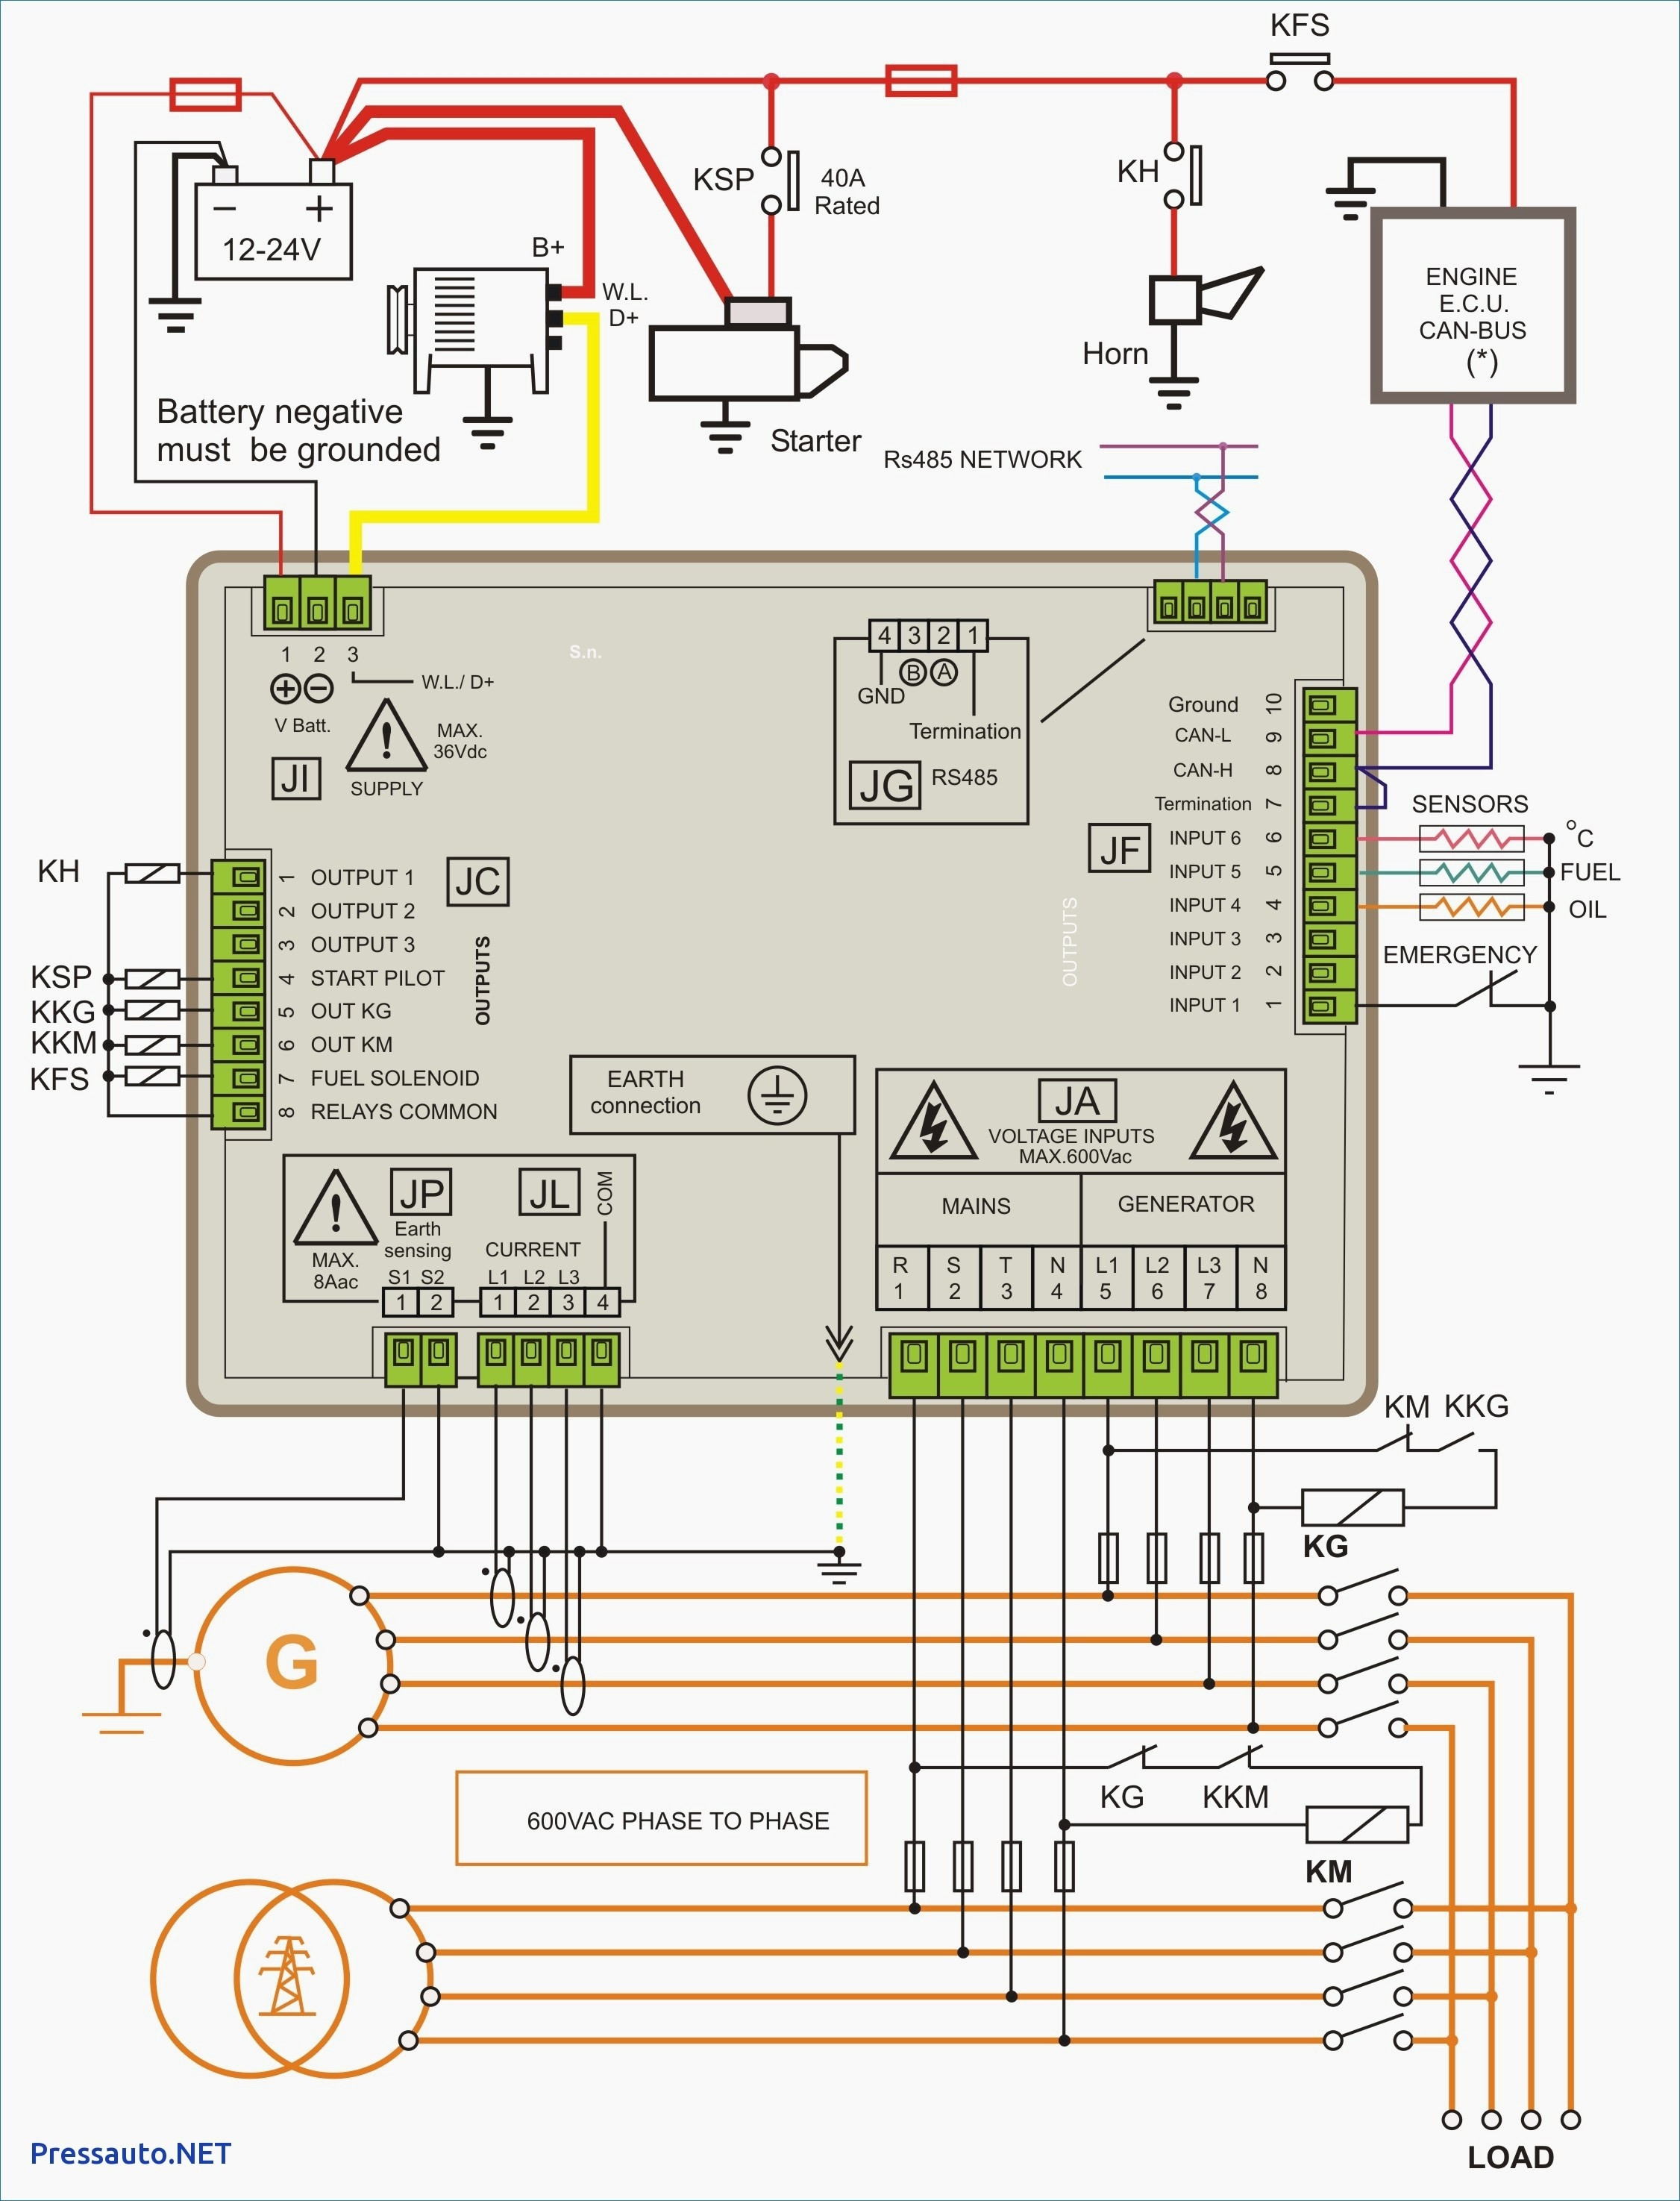 free wiring schematic software Download-electrical wiring diagram app save inspirational free wiring diagram rh ipphil 3 Phase Generator Wiring 5-b